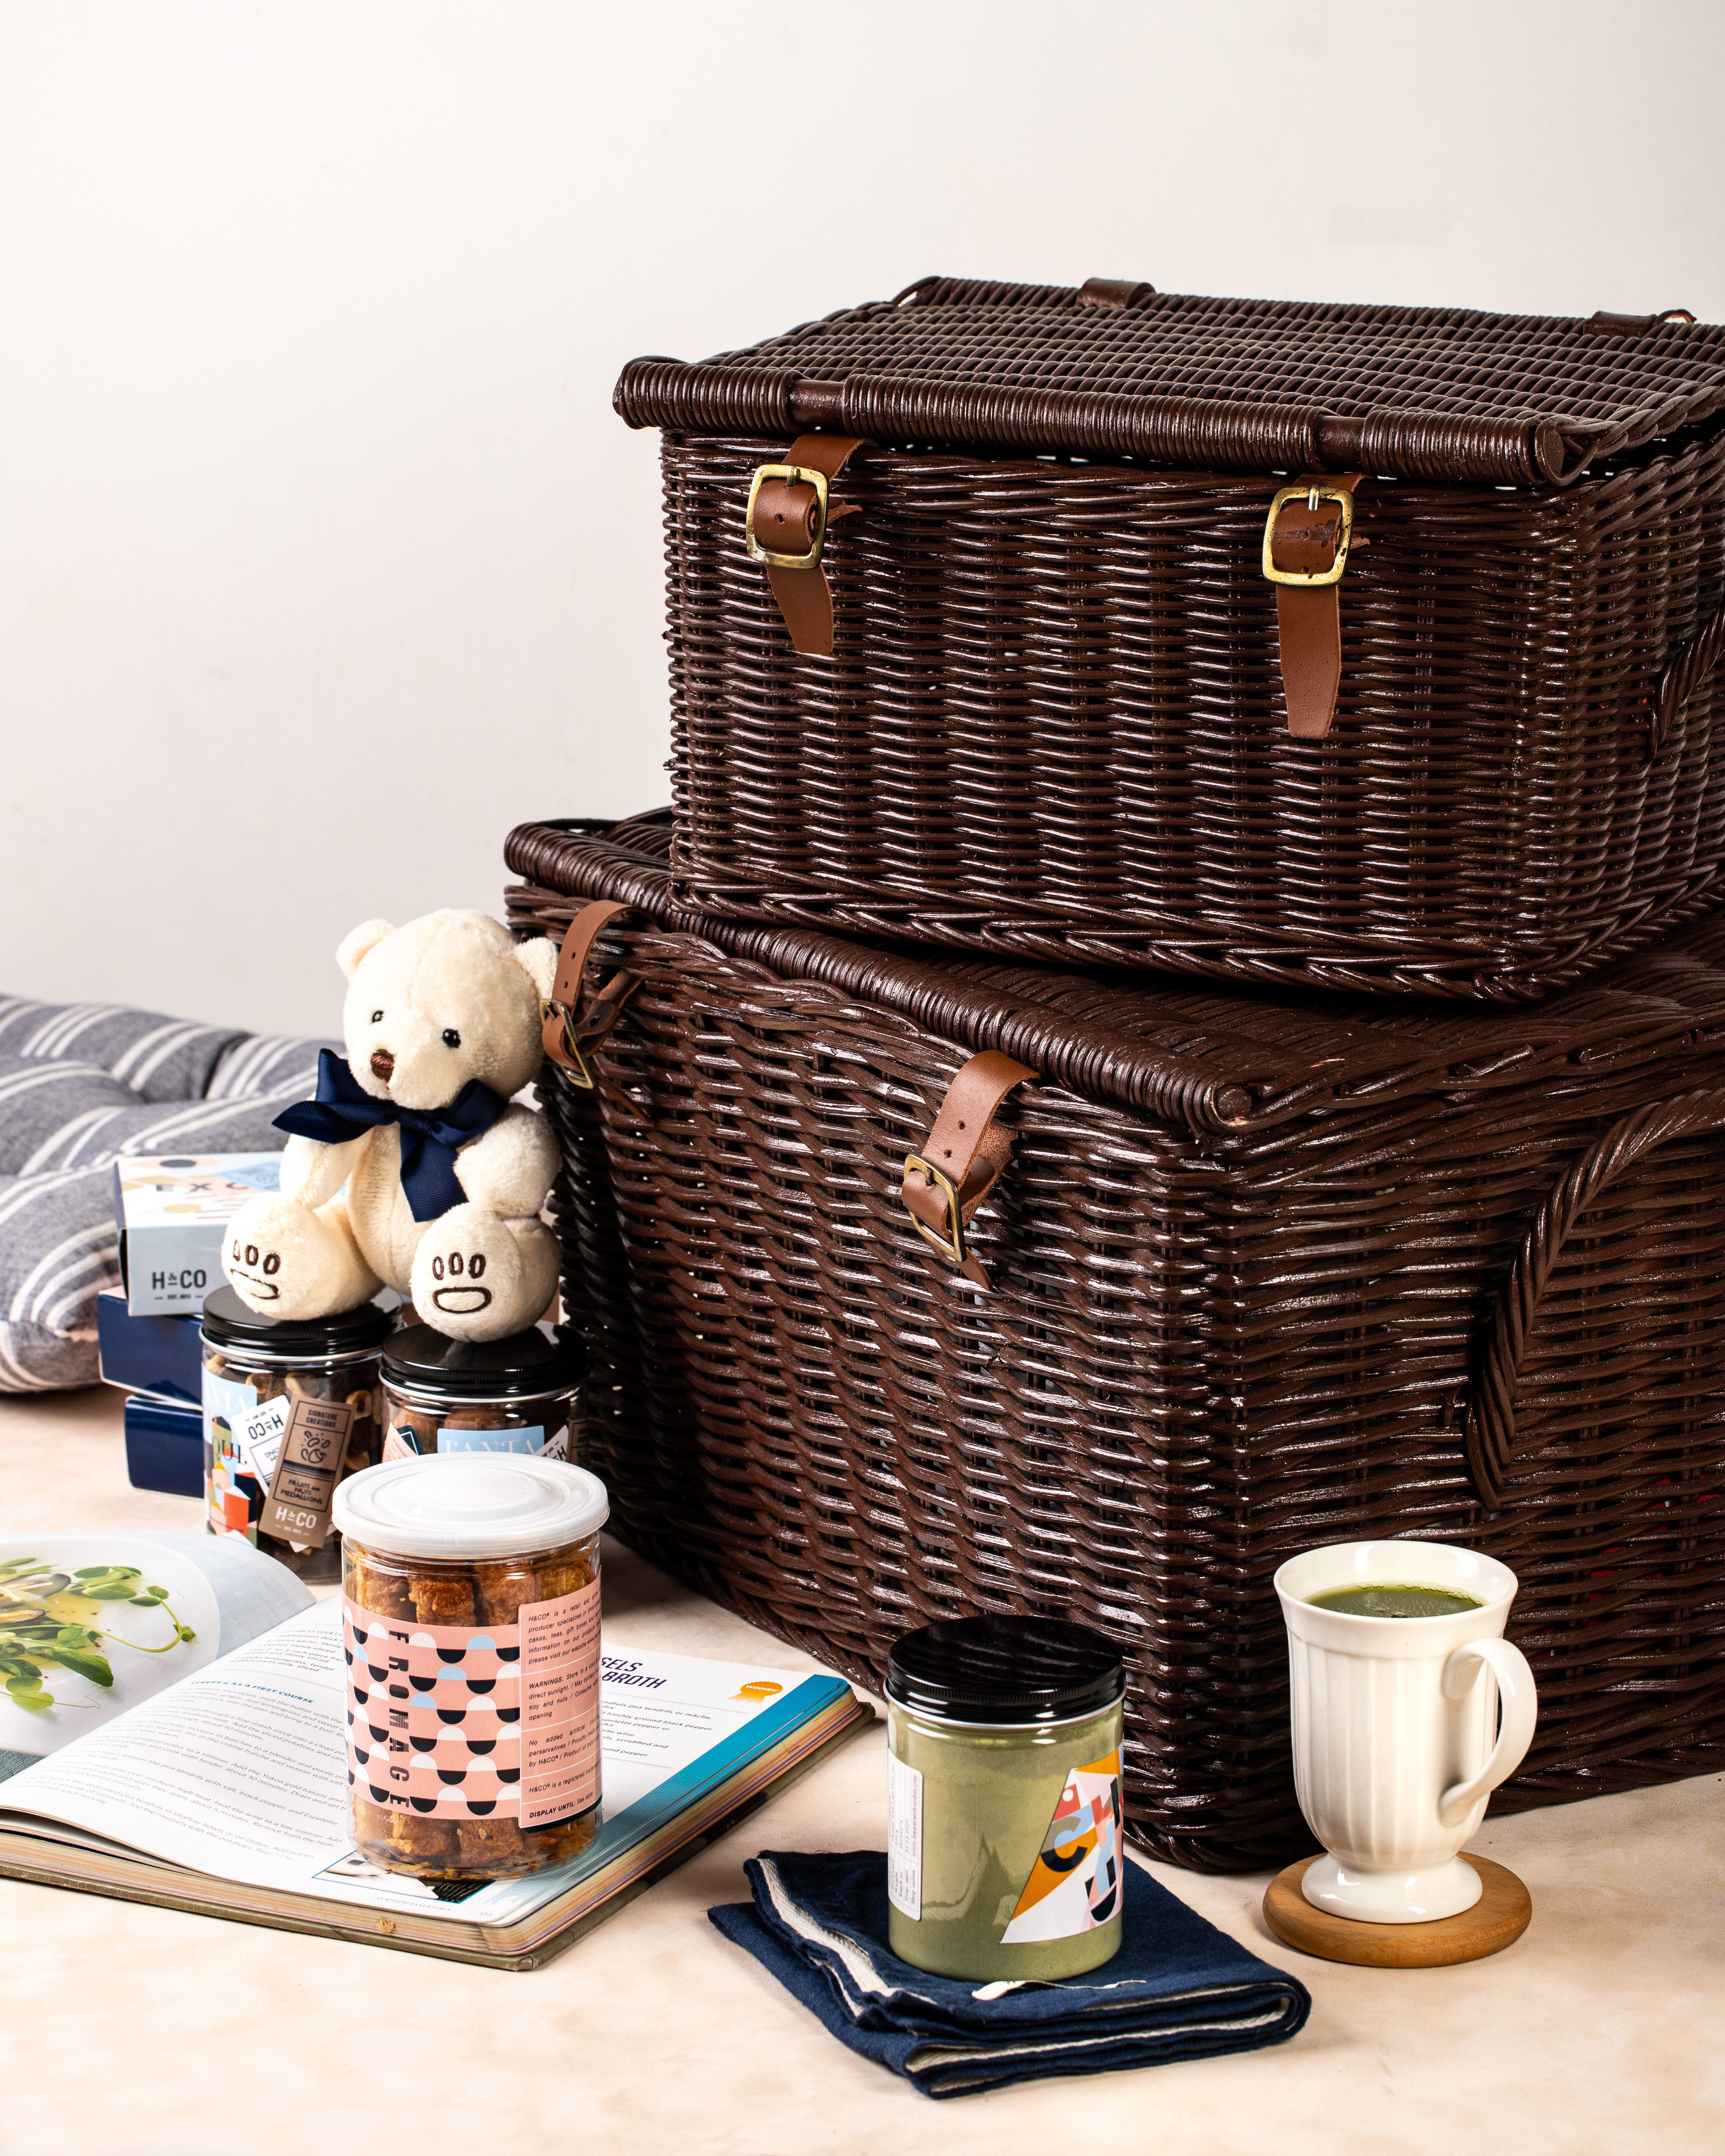 5 Creative Ways to Re-use Your H&CO Hamper Basket image